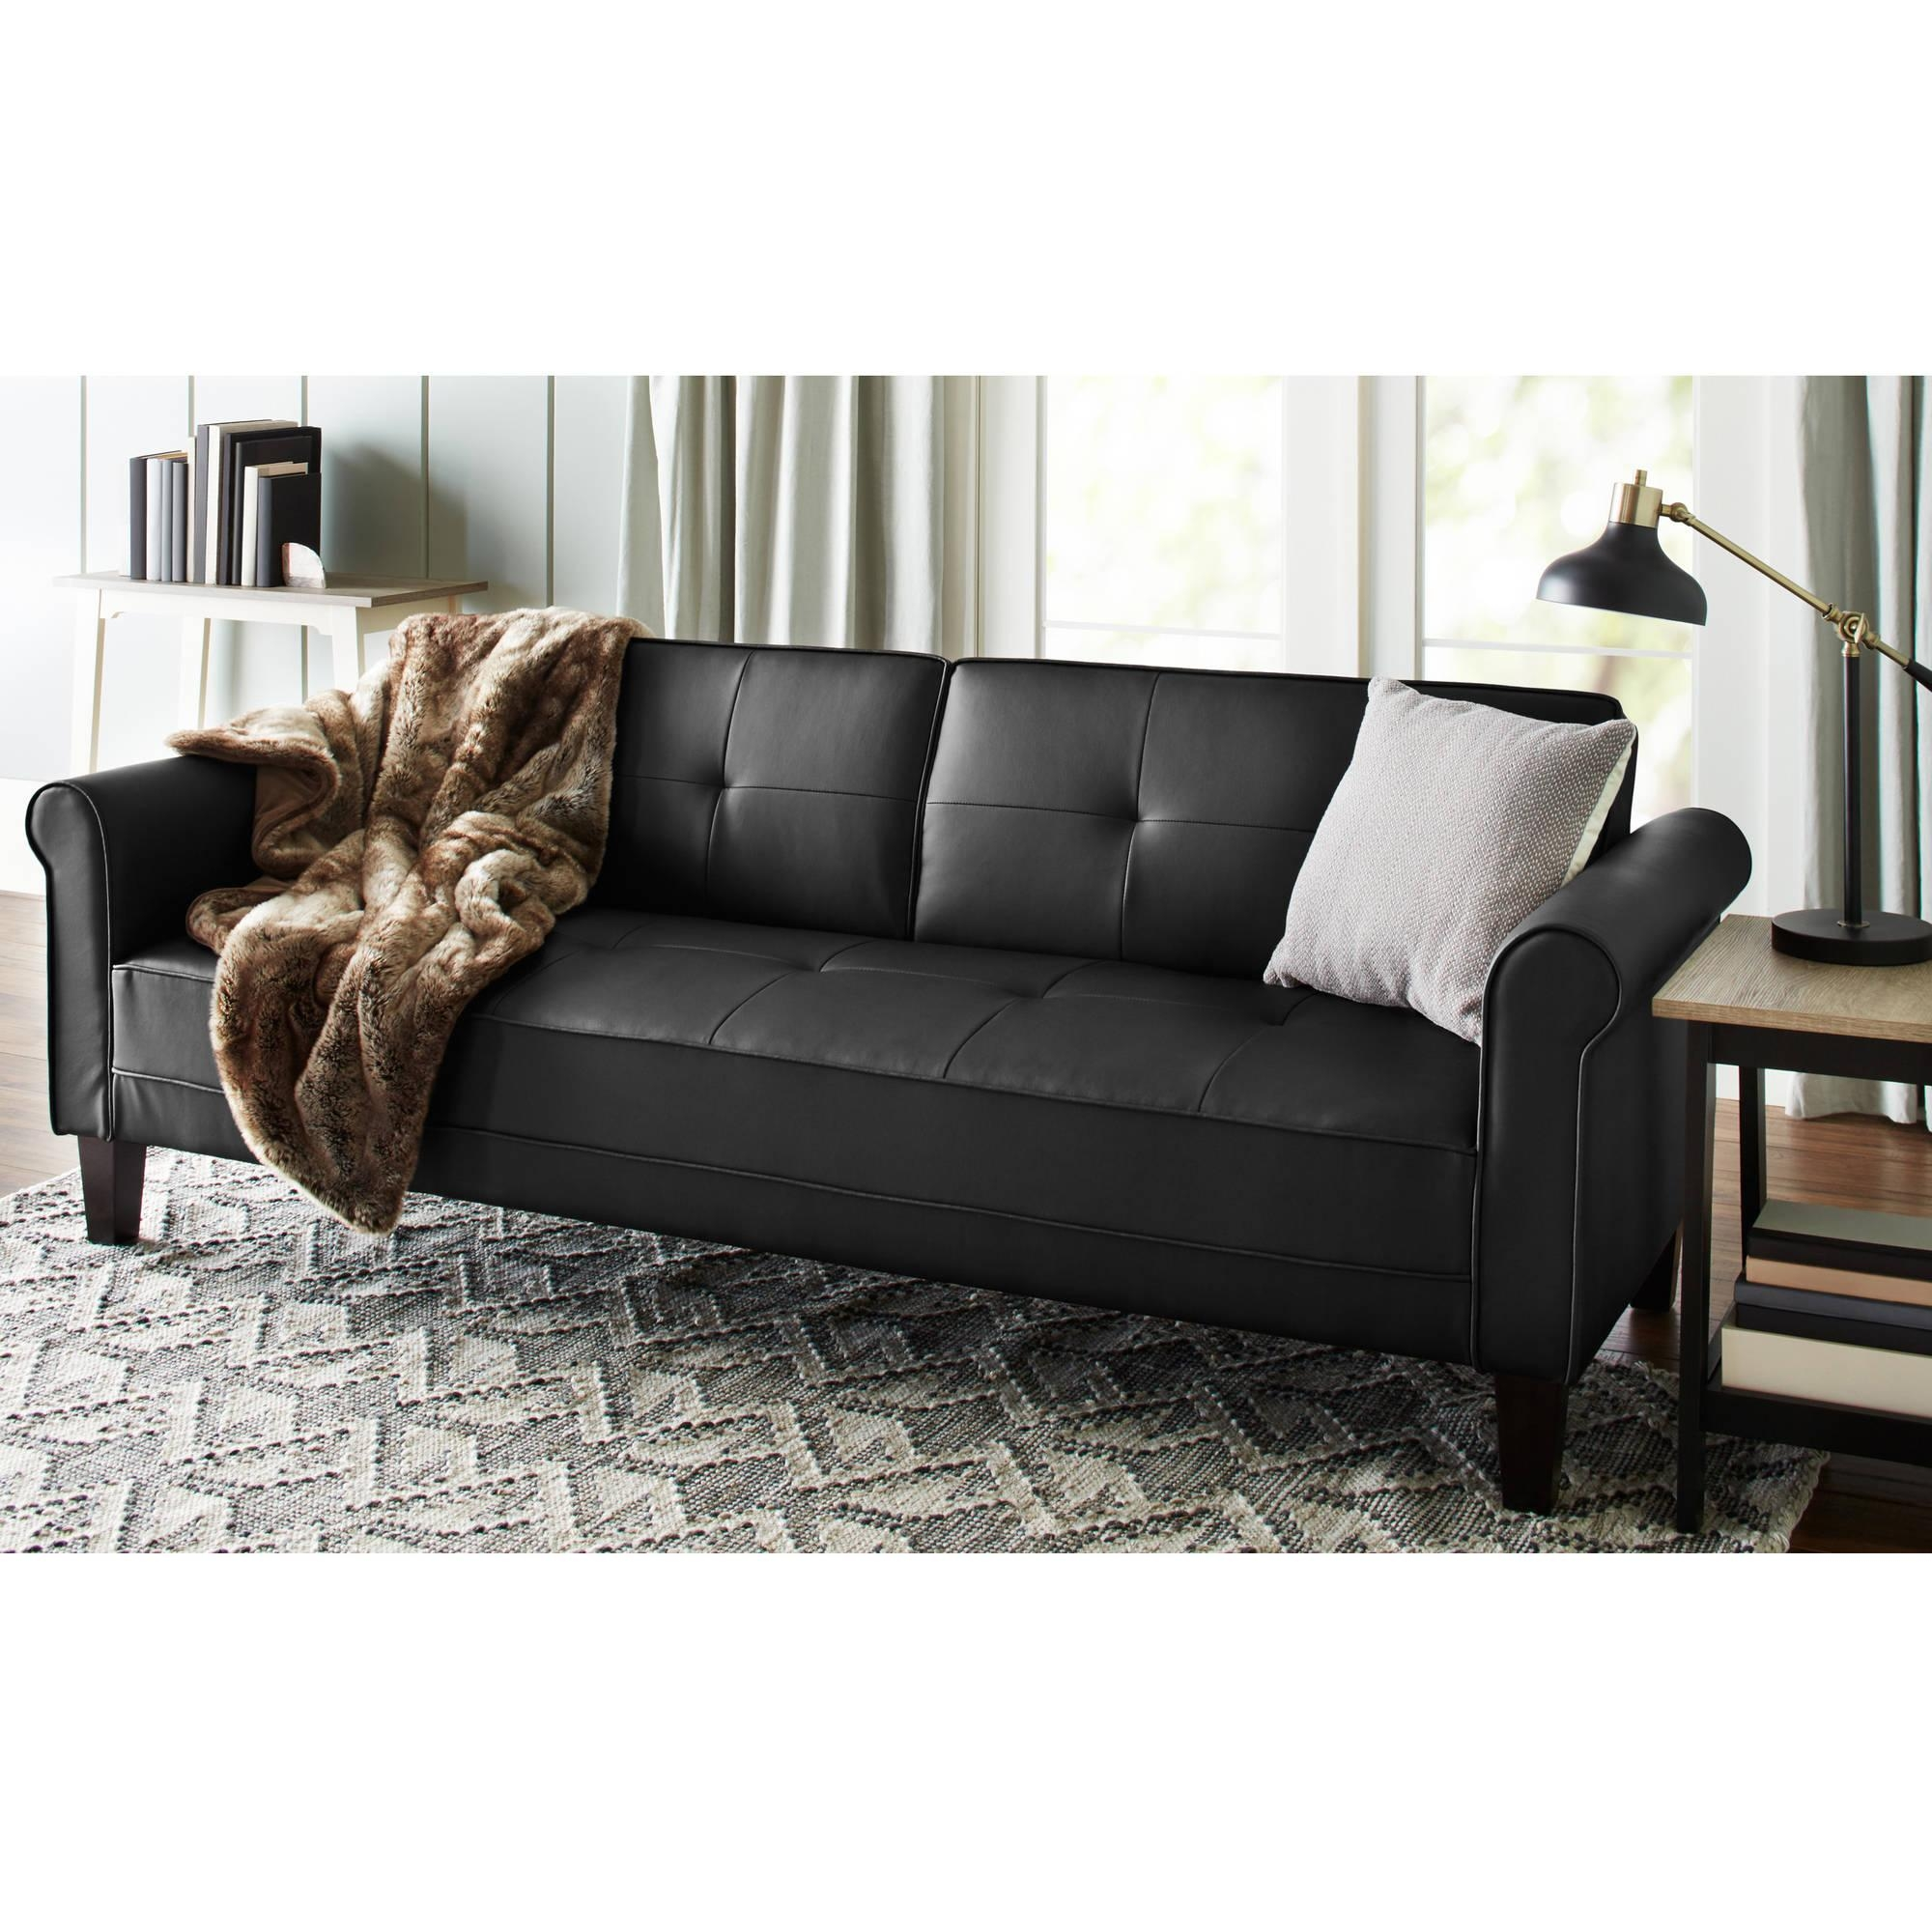 Ufe Norton Dark Brown Faux Leather 3-Piece Modern Living Room Sofa with Wallmart Sofa